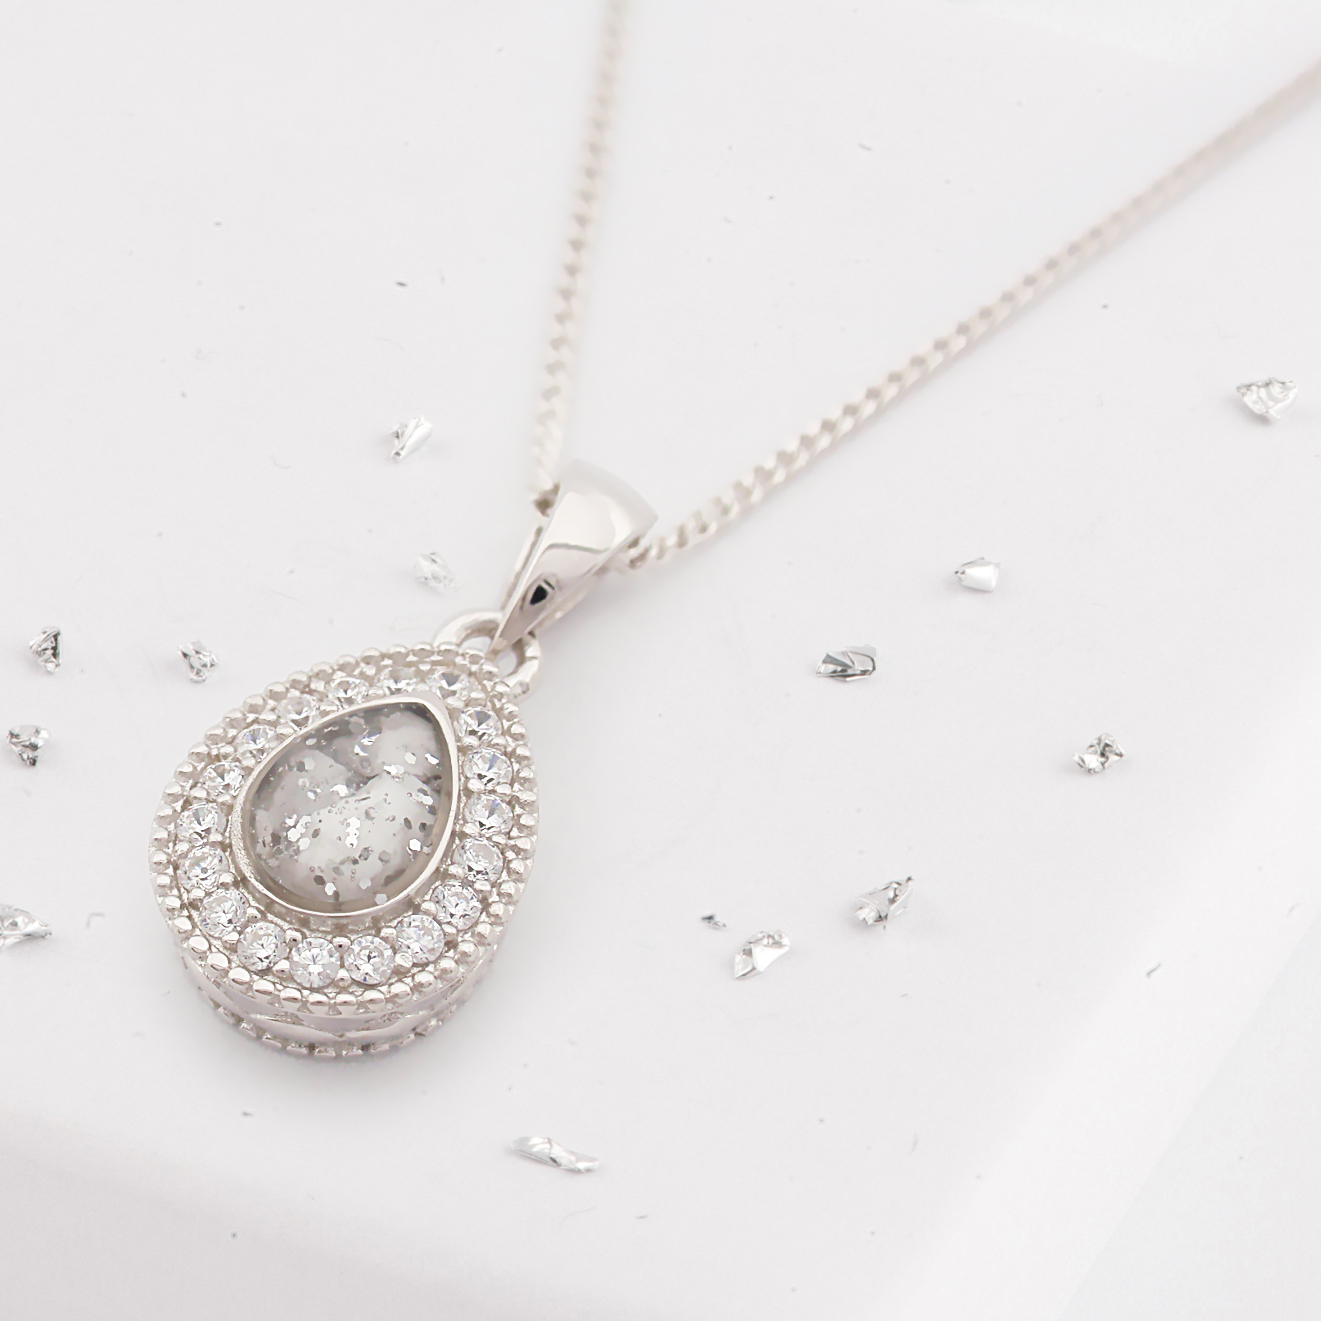 Small teardrop shaped ashes or hair crystal pendant